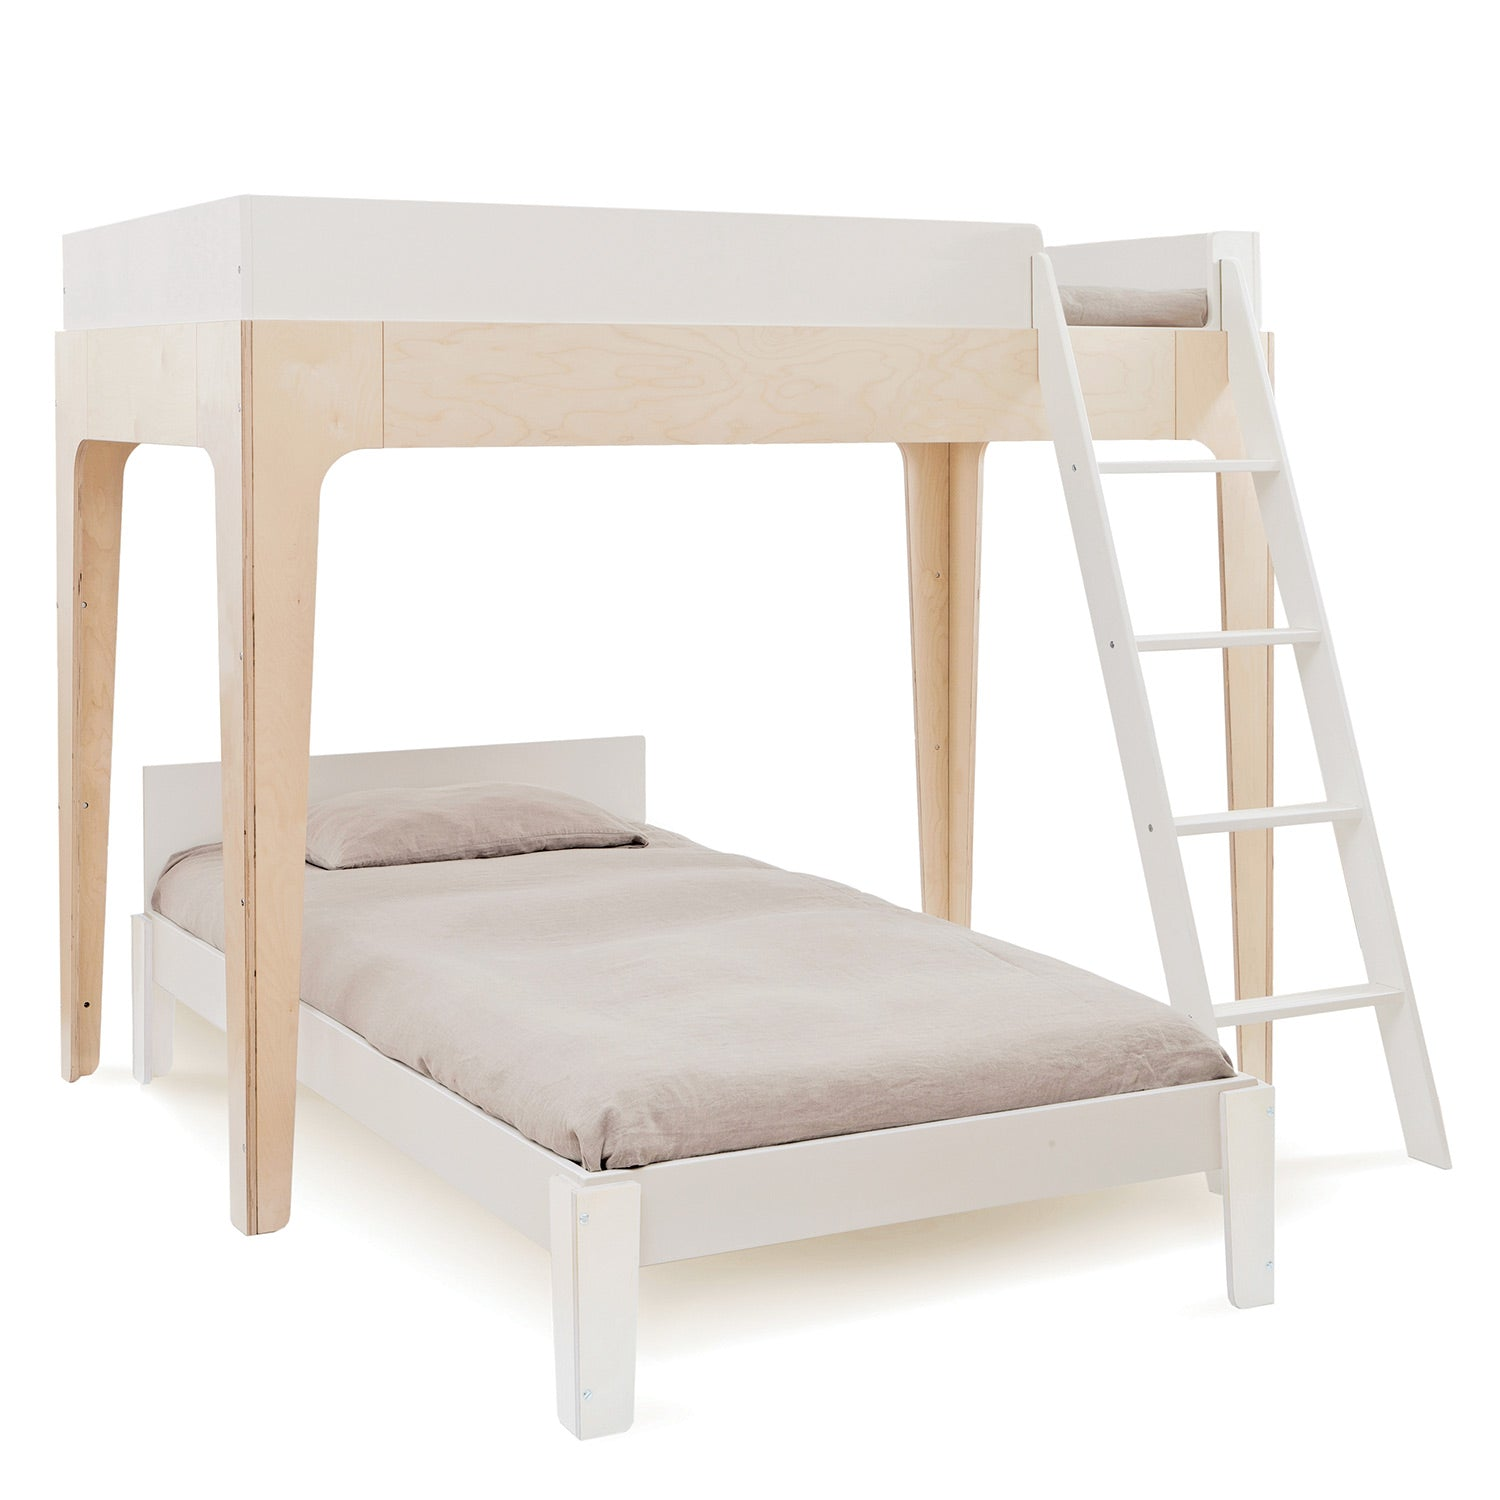 Perch Twin Bunk Bed For Kids Teens With Stairs By Oeuf Canada